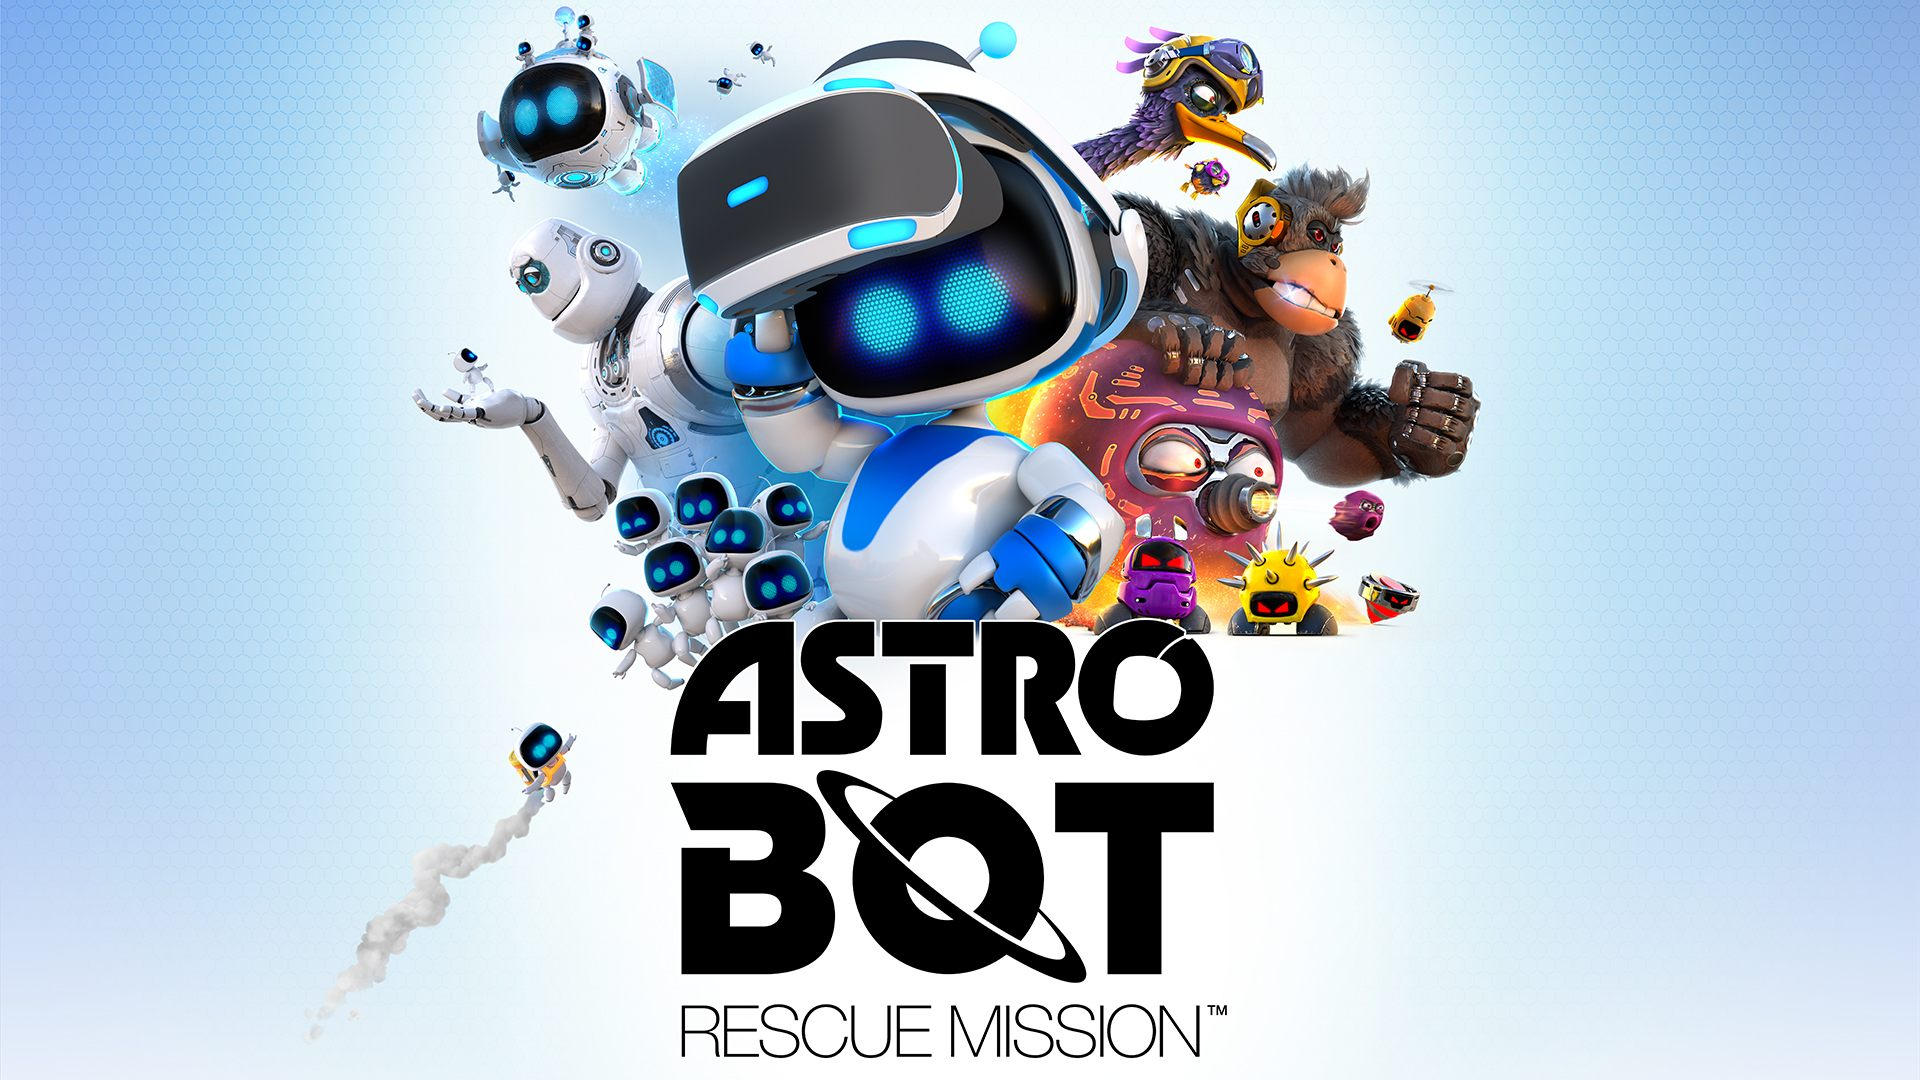 the game awards 2018 astro bot rescue mission best virtual reality augmented game